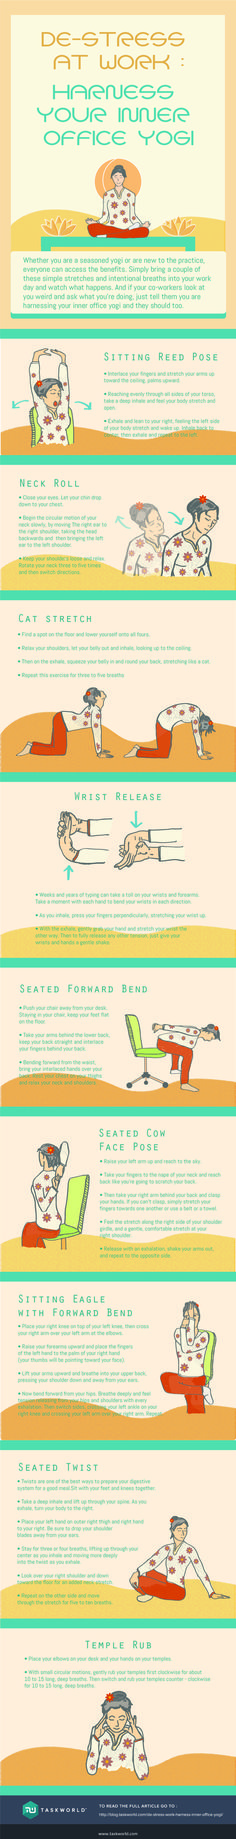 Relieve stress and tension and promote tranquility and clarity with these yoga poses that you can perform at work Yoga Flow, Mindfulness Meditation, Meditation Quotes, Office Yoga, Home Beauty Tips, Beauty Hacks, Yoga For Stress Relief, Fit Girl, Learn Yoga